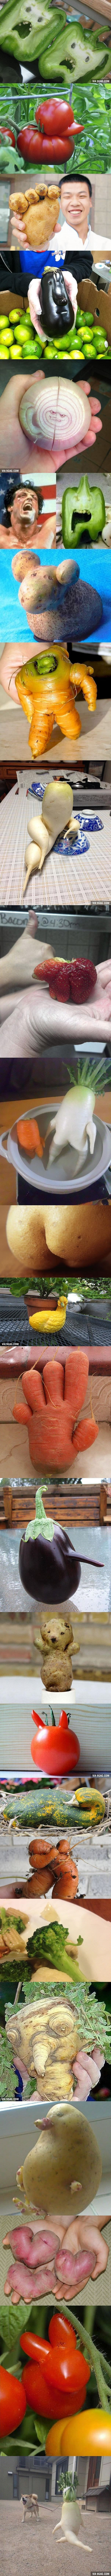 25 Vegetables That Wish They Were Something Else - Just DWL    The Ultimate Trolling